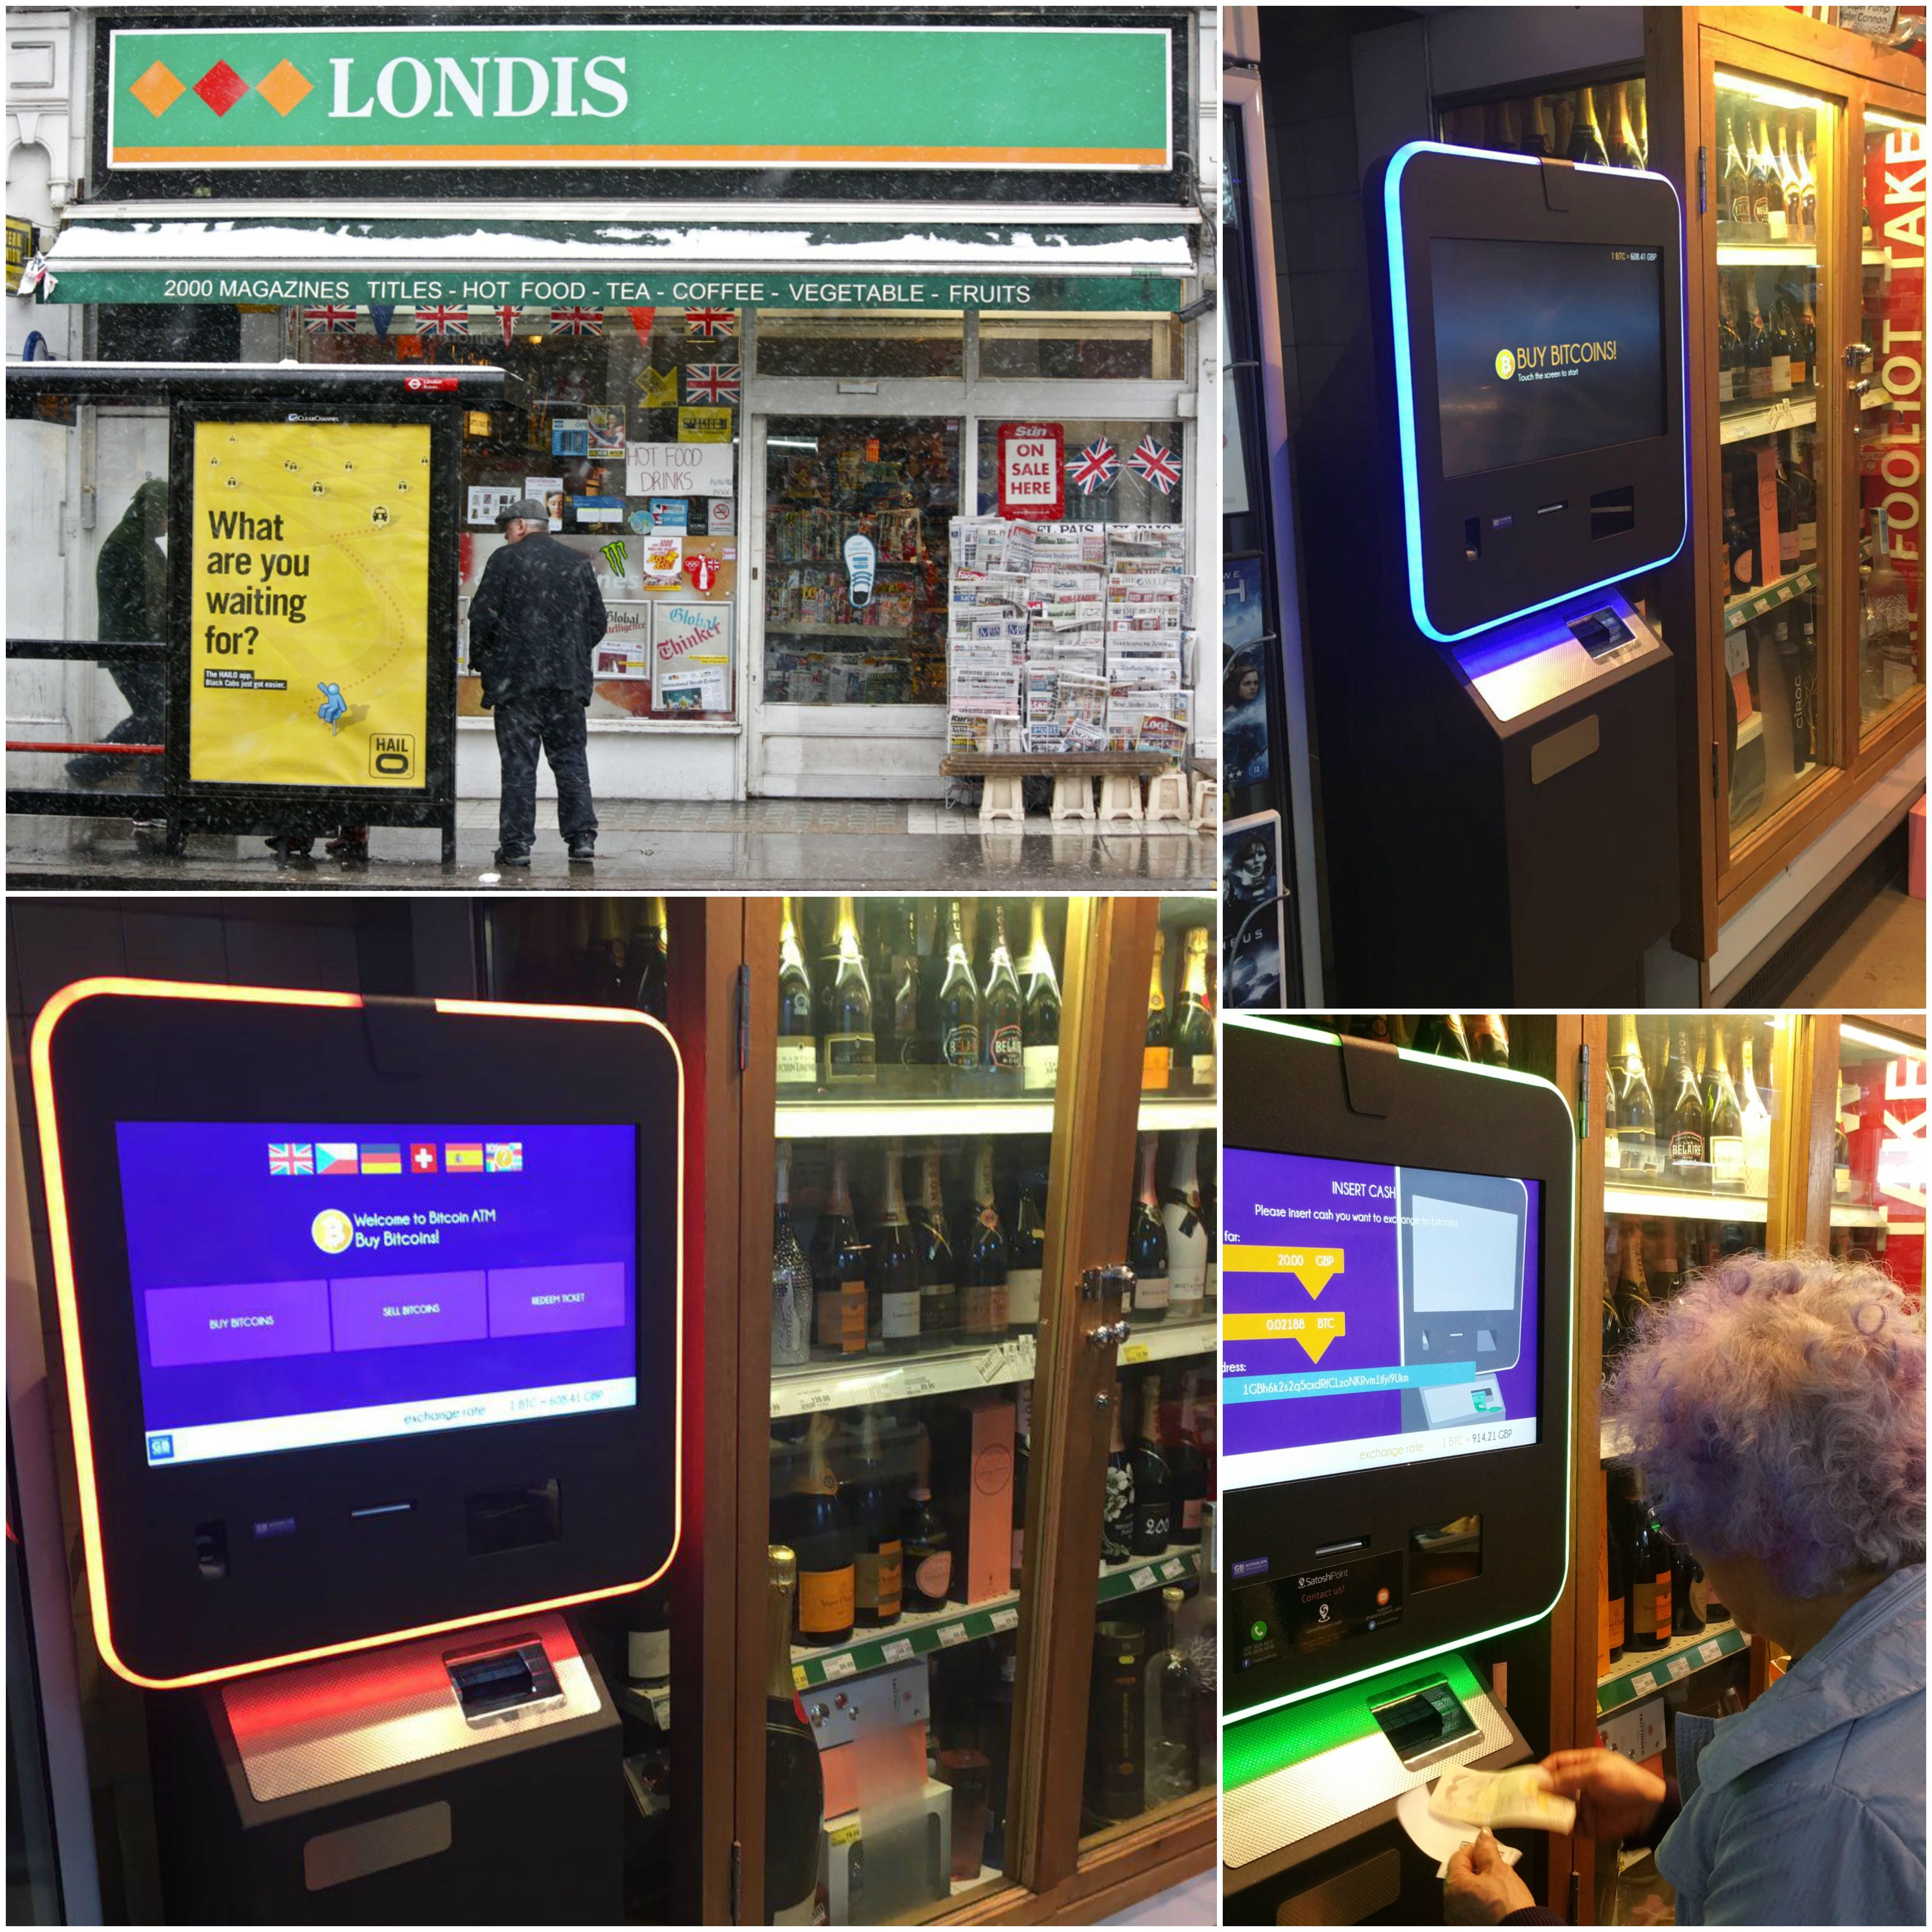 Buy sell bitcoin fast at londis food wine 237 kings rd buy sell bitcoin fast at londis food wine 237 kings rd london ccuart Images